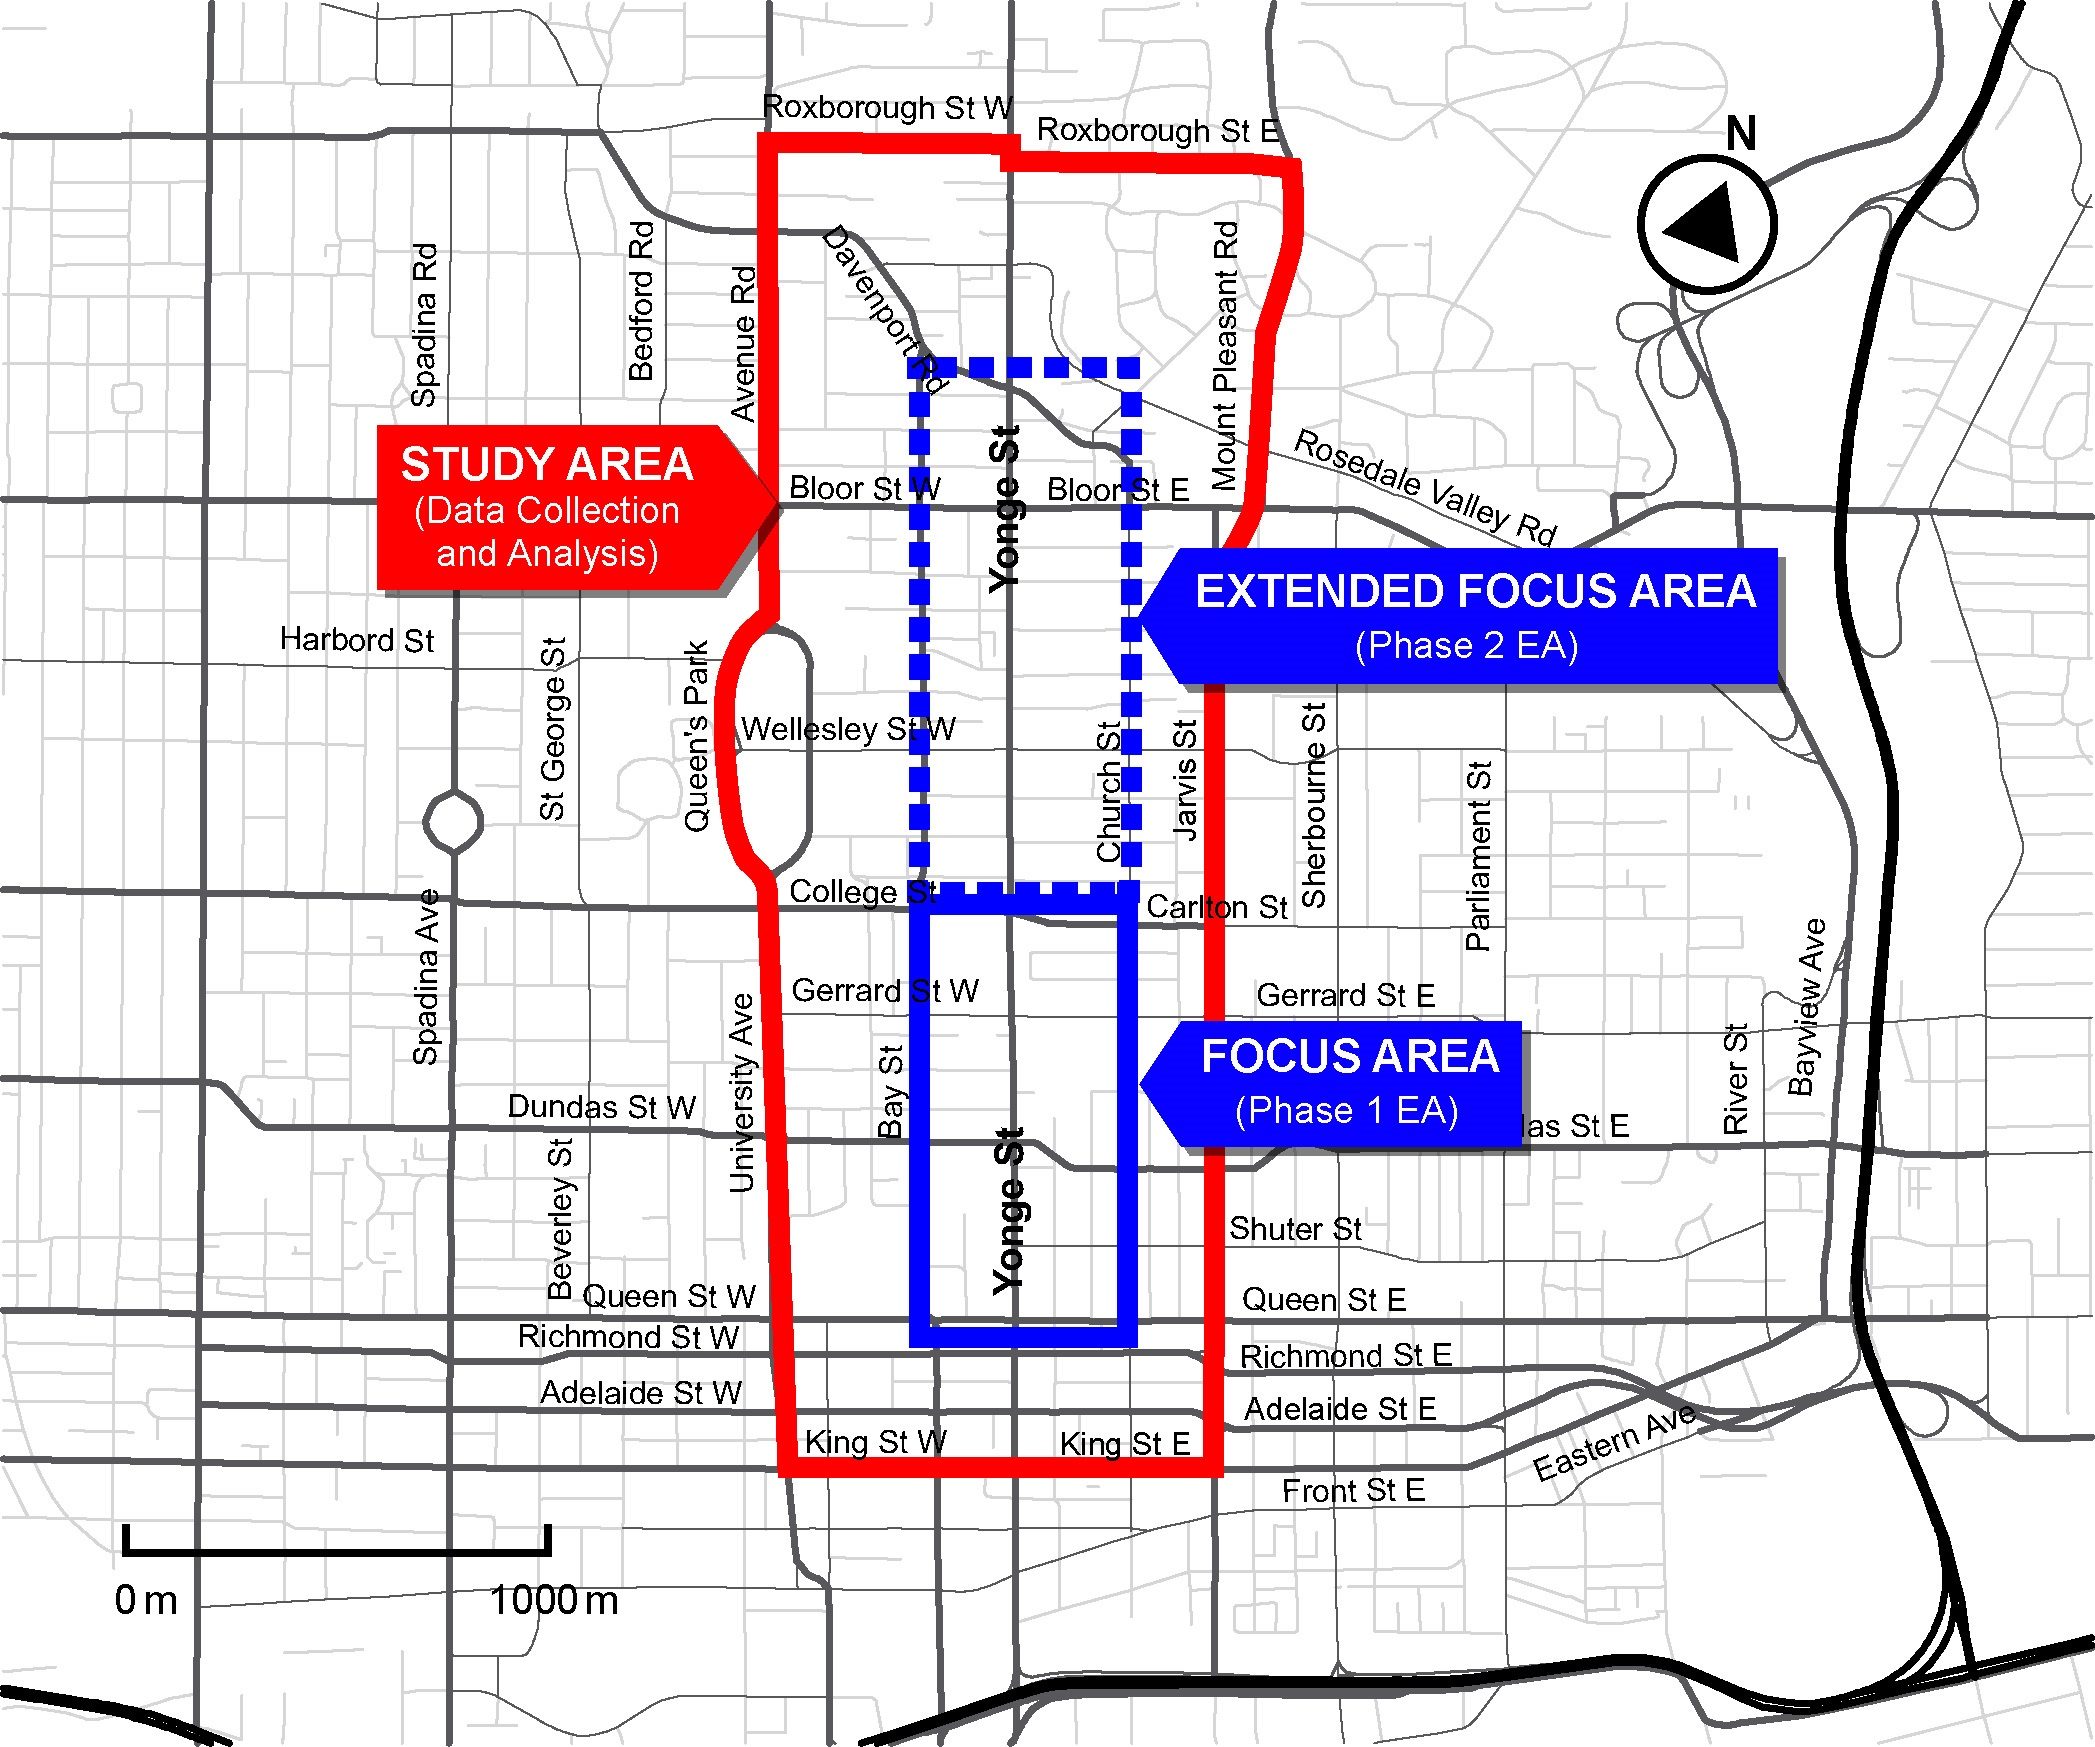 Phase 1 is from Queen St to College St, Phase 2 is from College St to Davenport